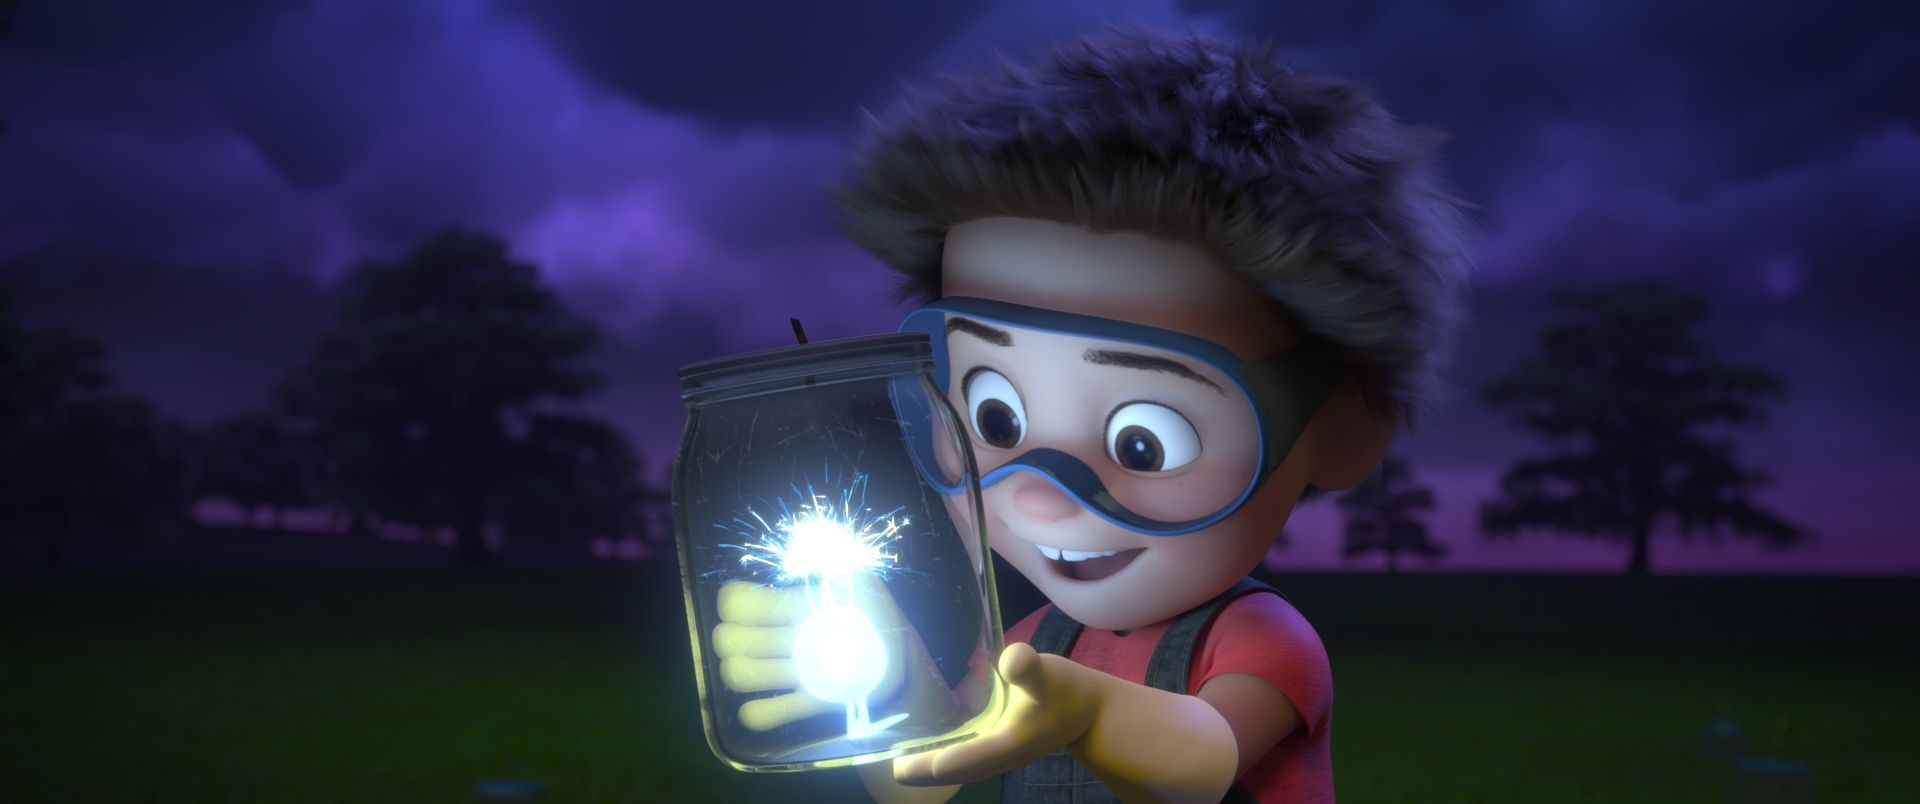 Short Circuit Disney Plus Trailer Features 14 Animated Short Films Collider